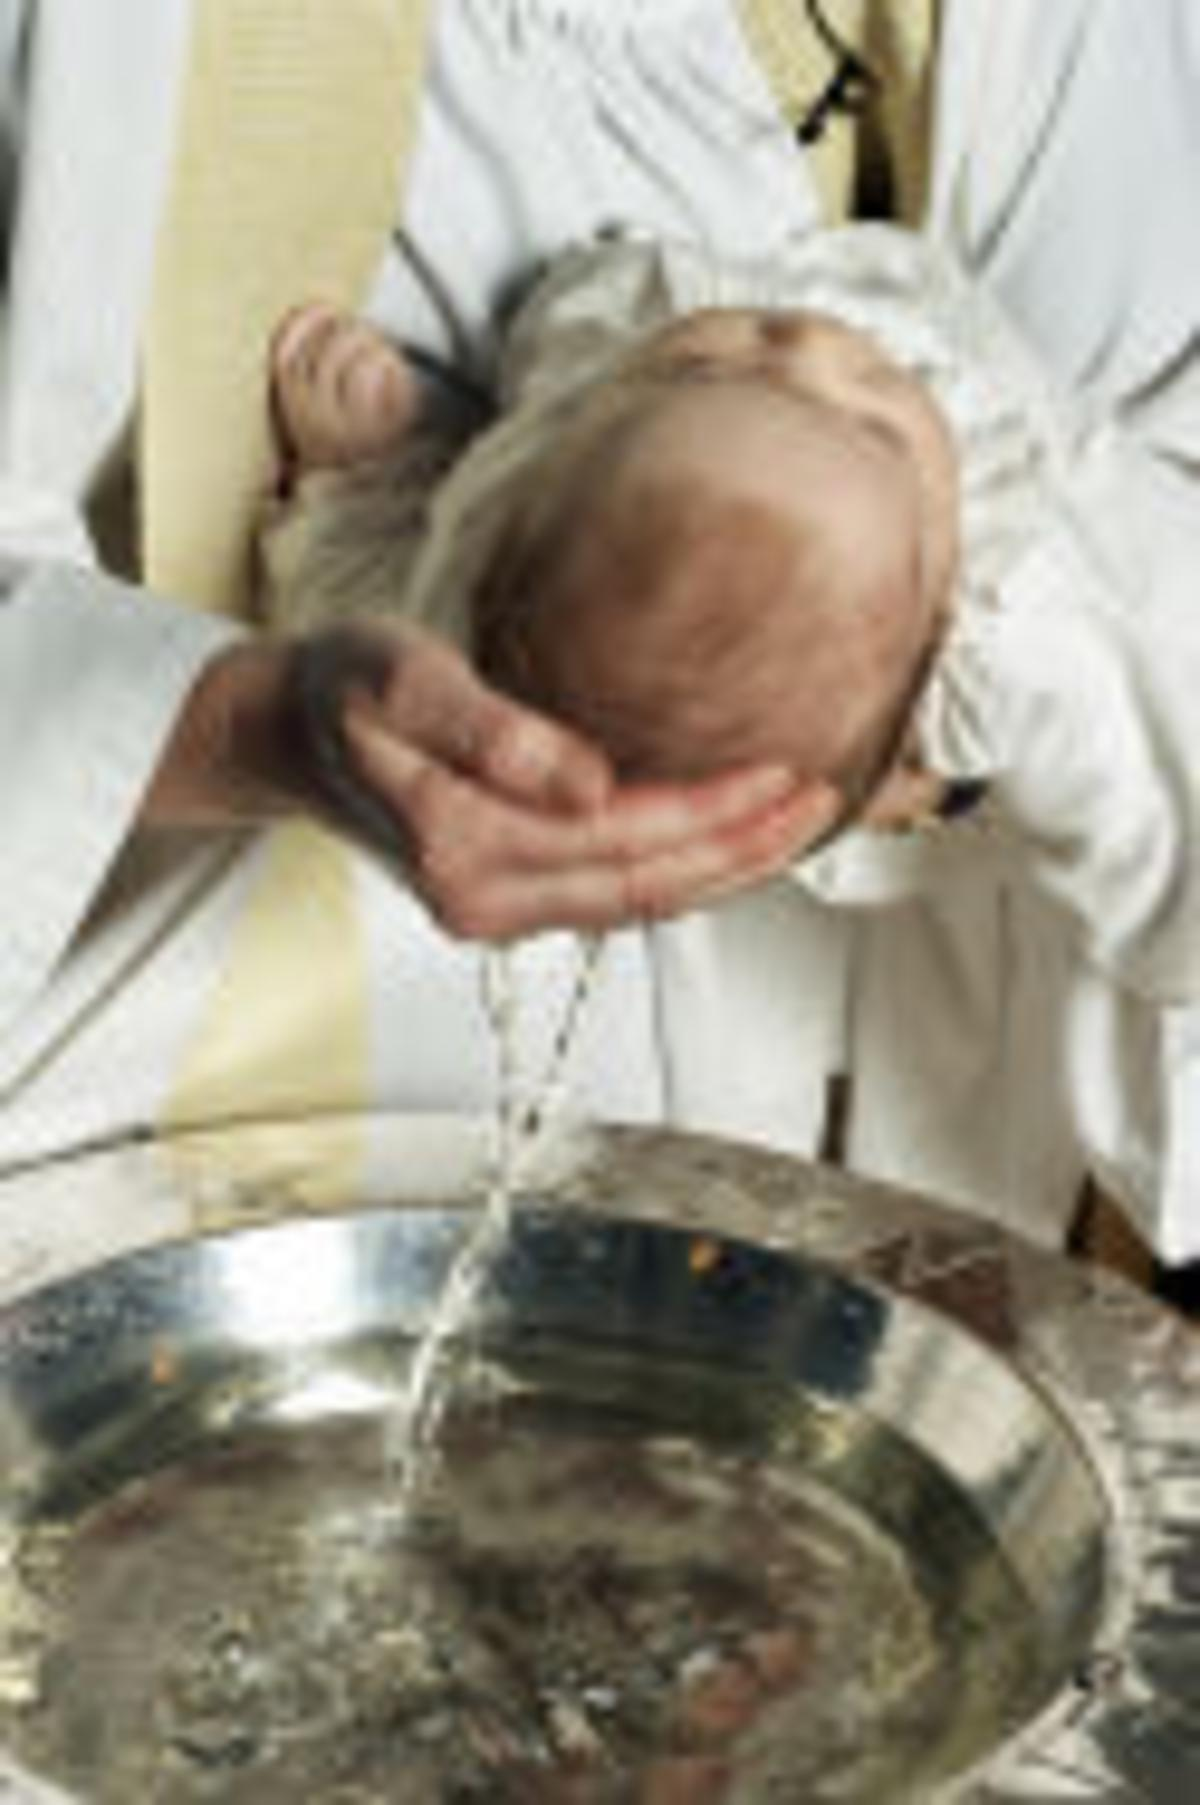 Why Are Babies Baptized?